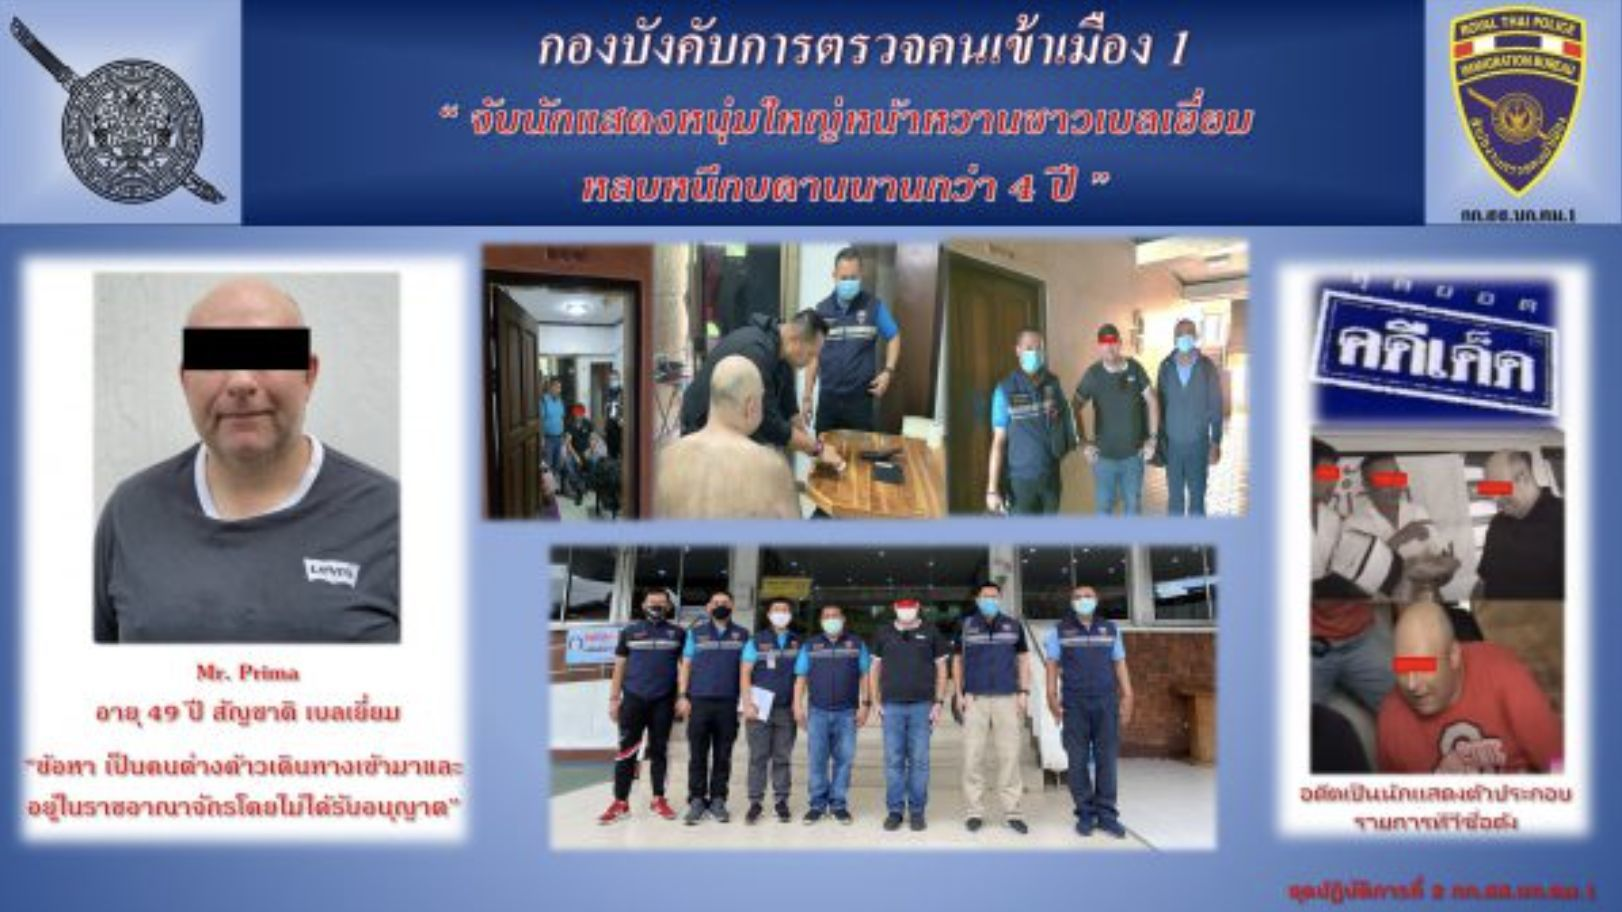 Belgian arrested after living and working in Thailand without a passport for 4 years | Thaiger